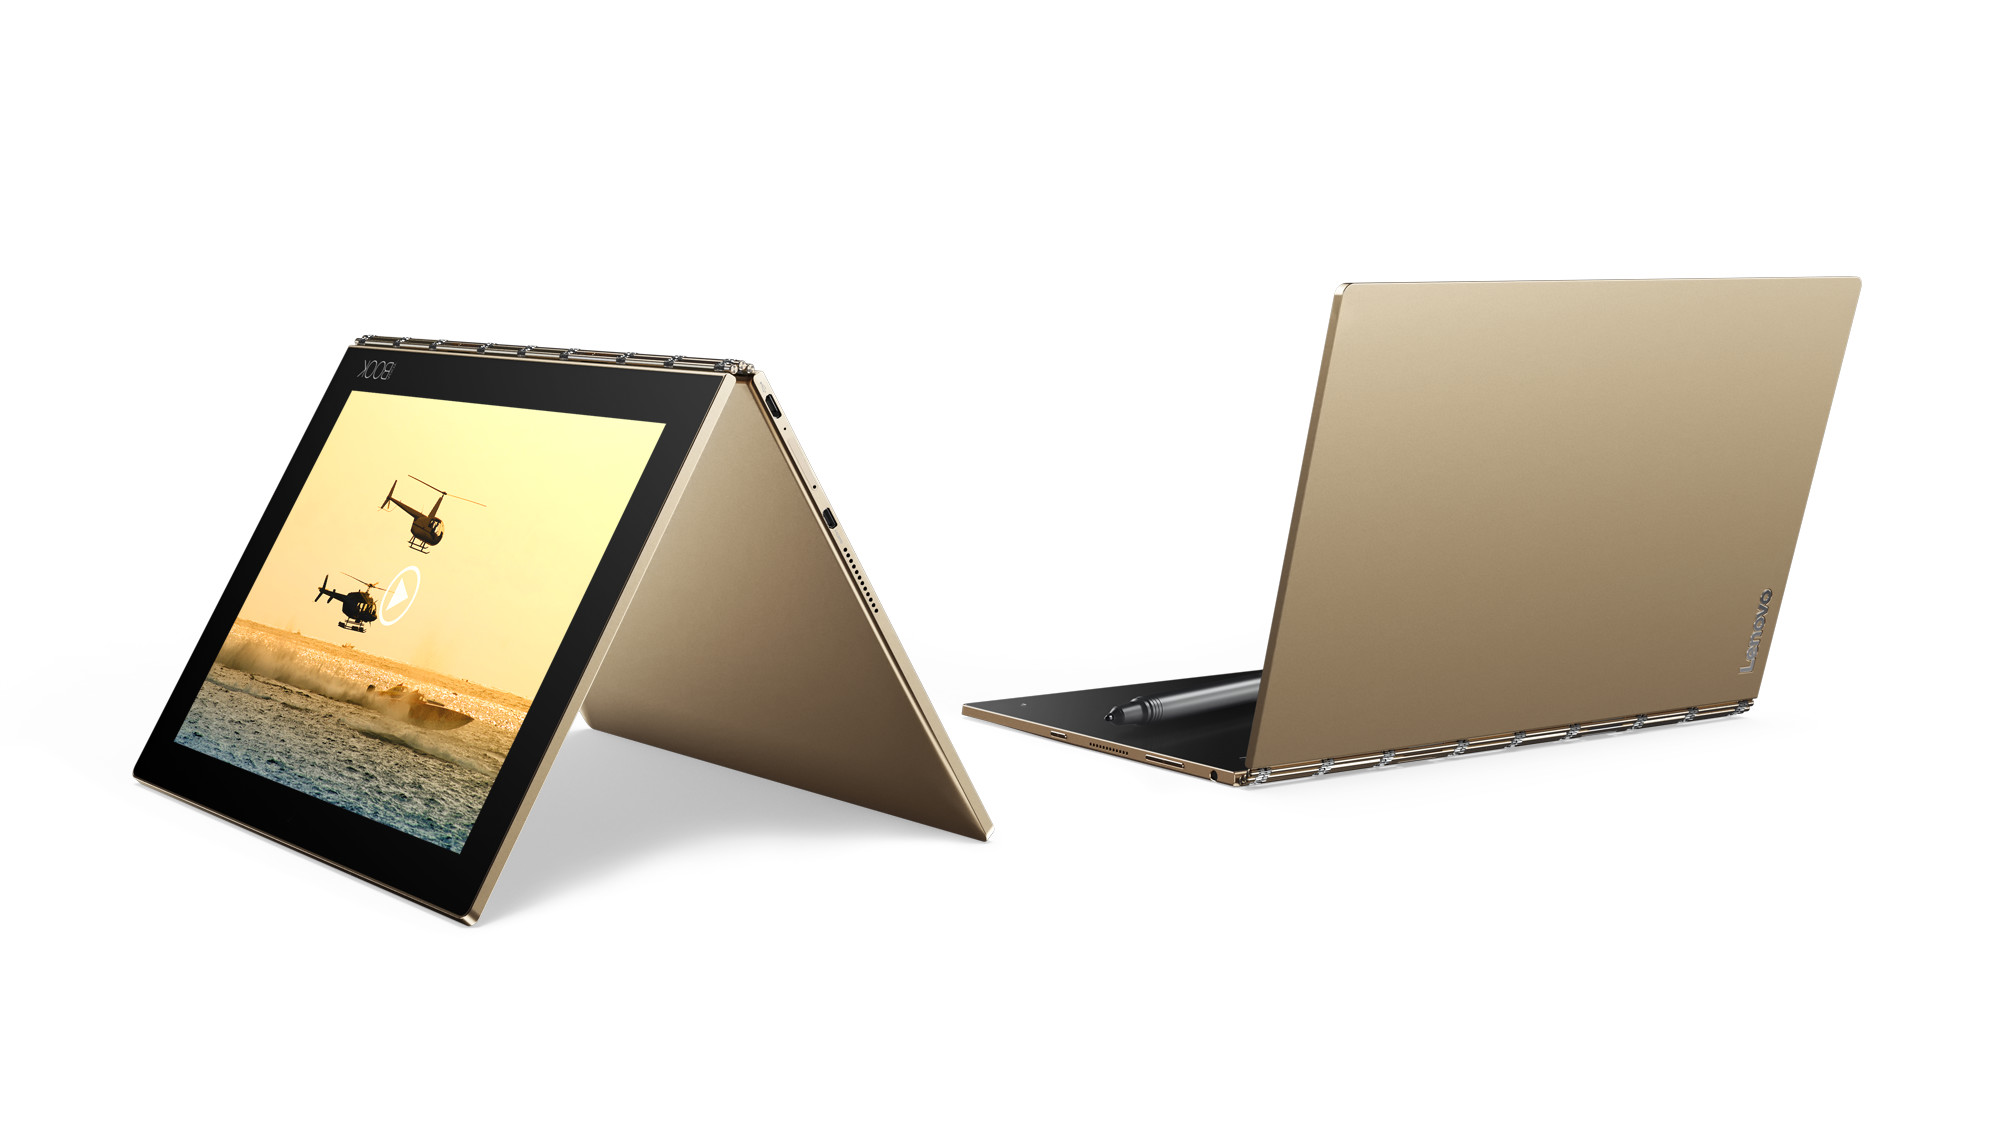 "Lenovo YOGA BOOK ANDROID Atom x5-Z8550 2,4GHz/10,1"" FHD/IPS/multitouch/4GB/64GB/CreatePad/Halo KBRD/WiFi/Android 6 zlatá"